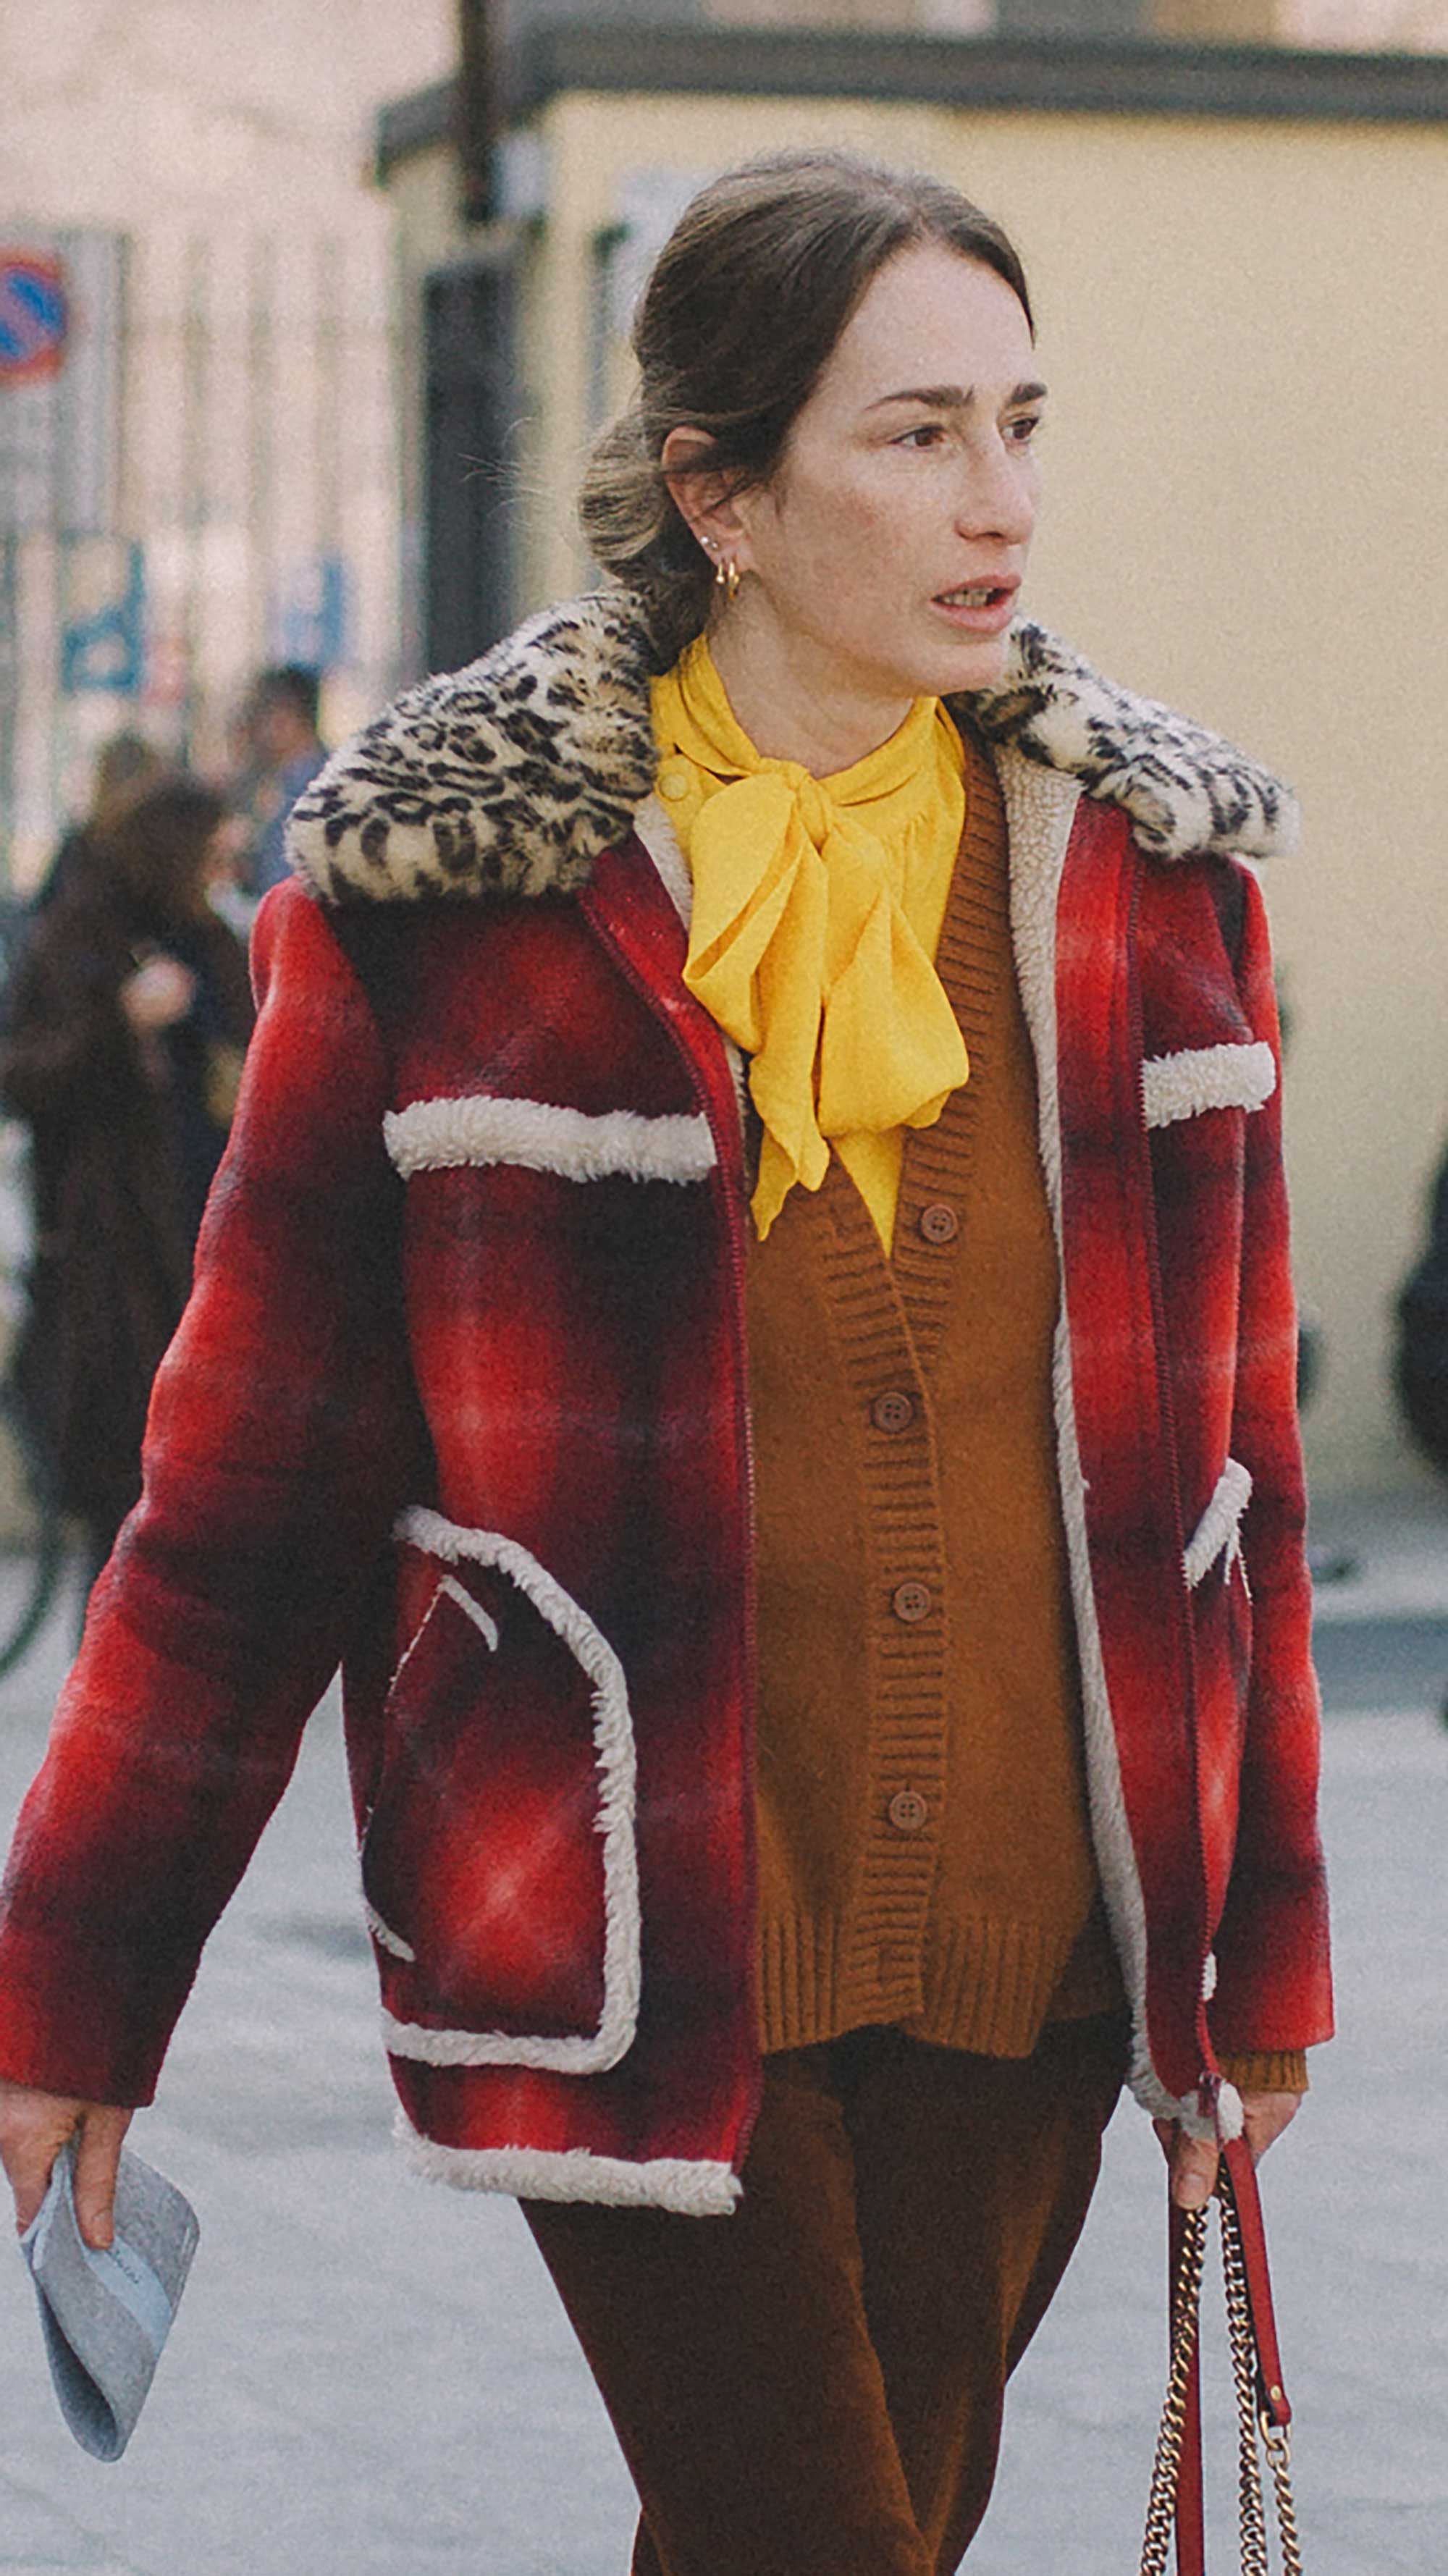 est outfits of Milan Fashion Week street style day two MFW FW19 46.jpg